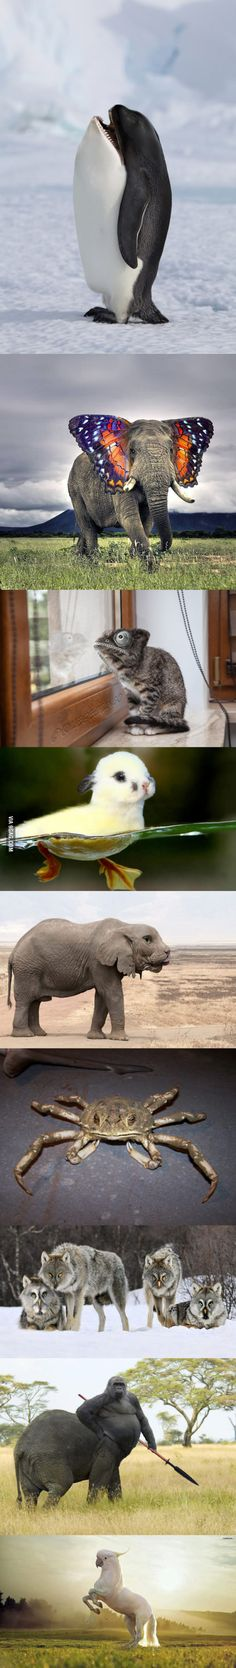 Majestic animal photoshopping - Panissue Share Majestic animal photoshopping<br> Majestic animal photoshopping Majestic animal photoshopping… my favorite is the last one :))))) Funny Sports Pictures, Funny Animal Pictures, Best Funny Pictures, Funny Pics, Funny Videos, Wierd Pictures, 9gag Funny, Funny Shit, Funny Memes